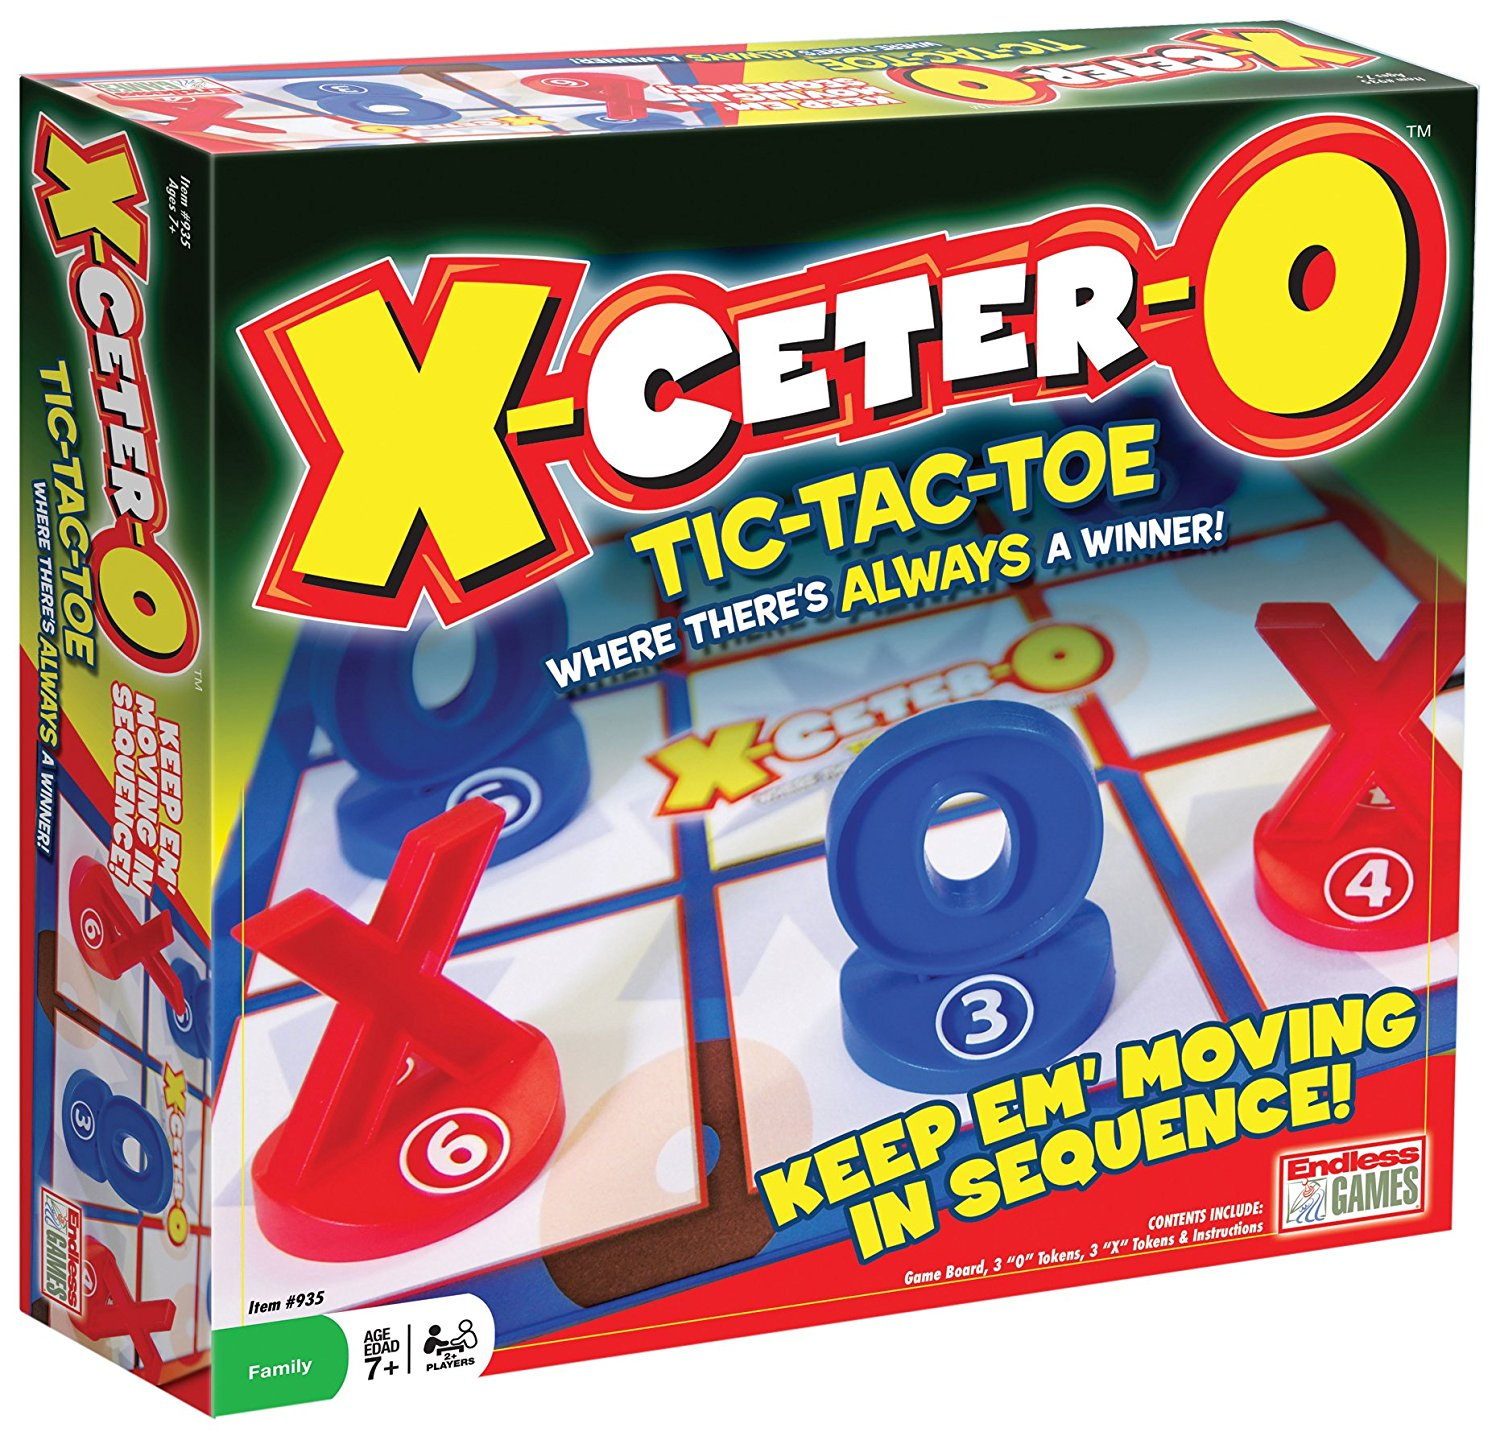 X-Ceter-O Game, Each player has three pieces, each numbered 1, 2 and 3. By Endless Games Ship from US by